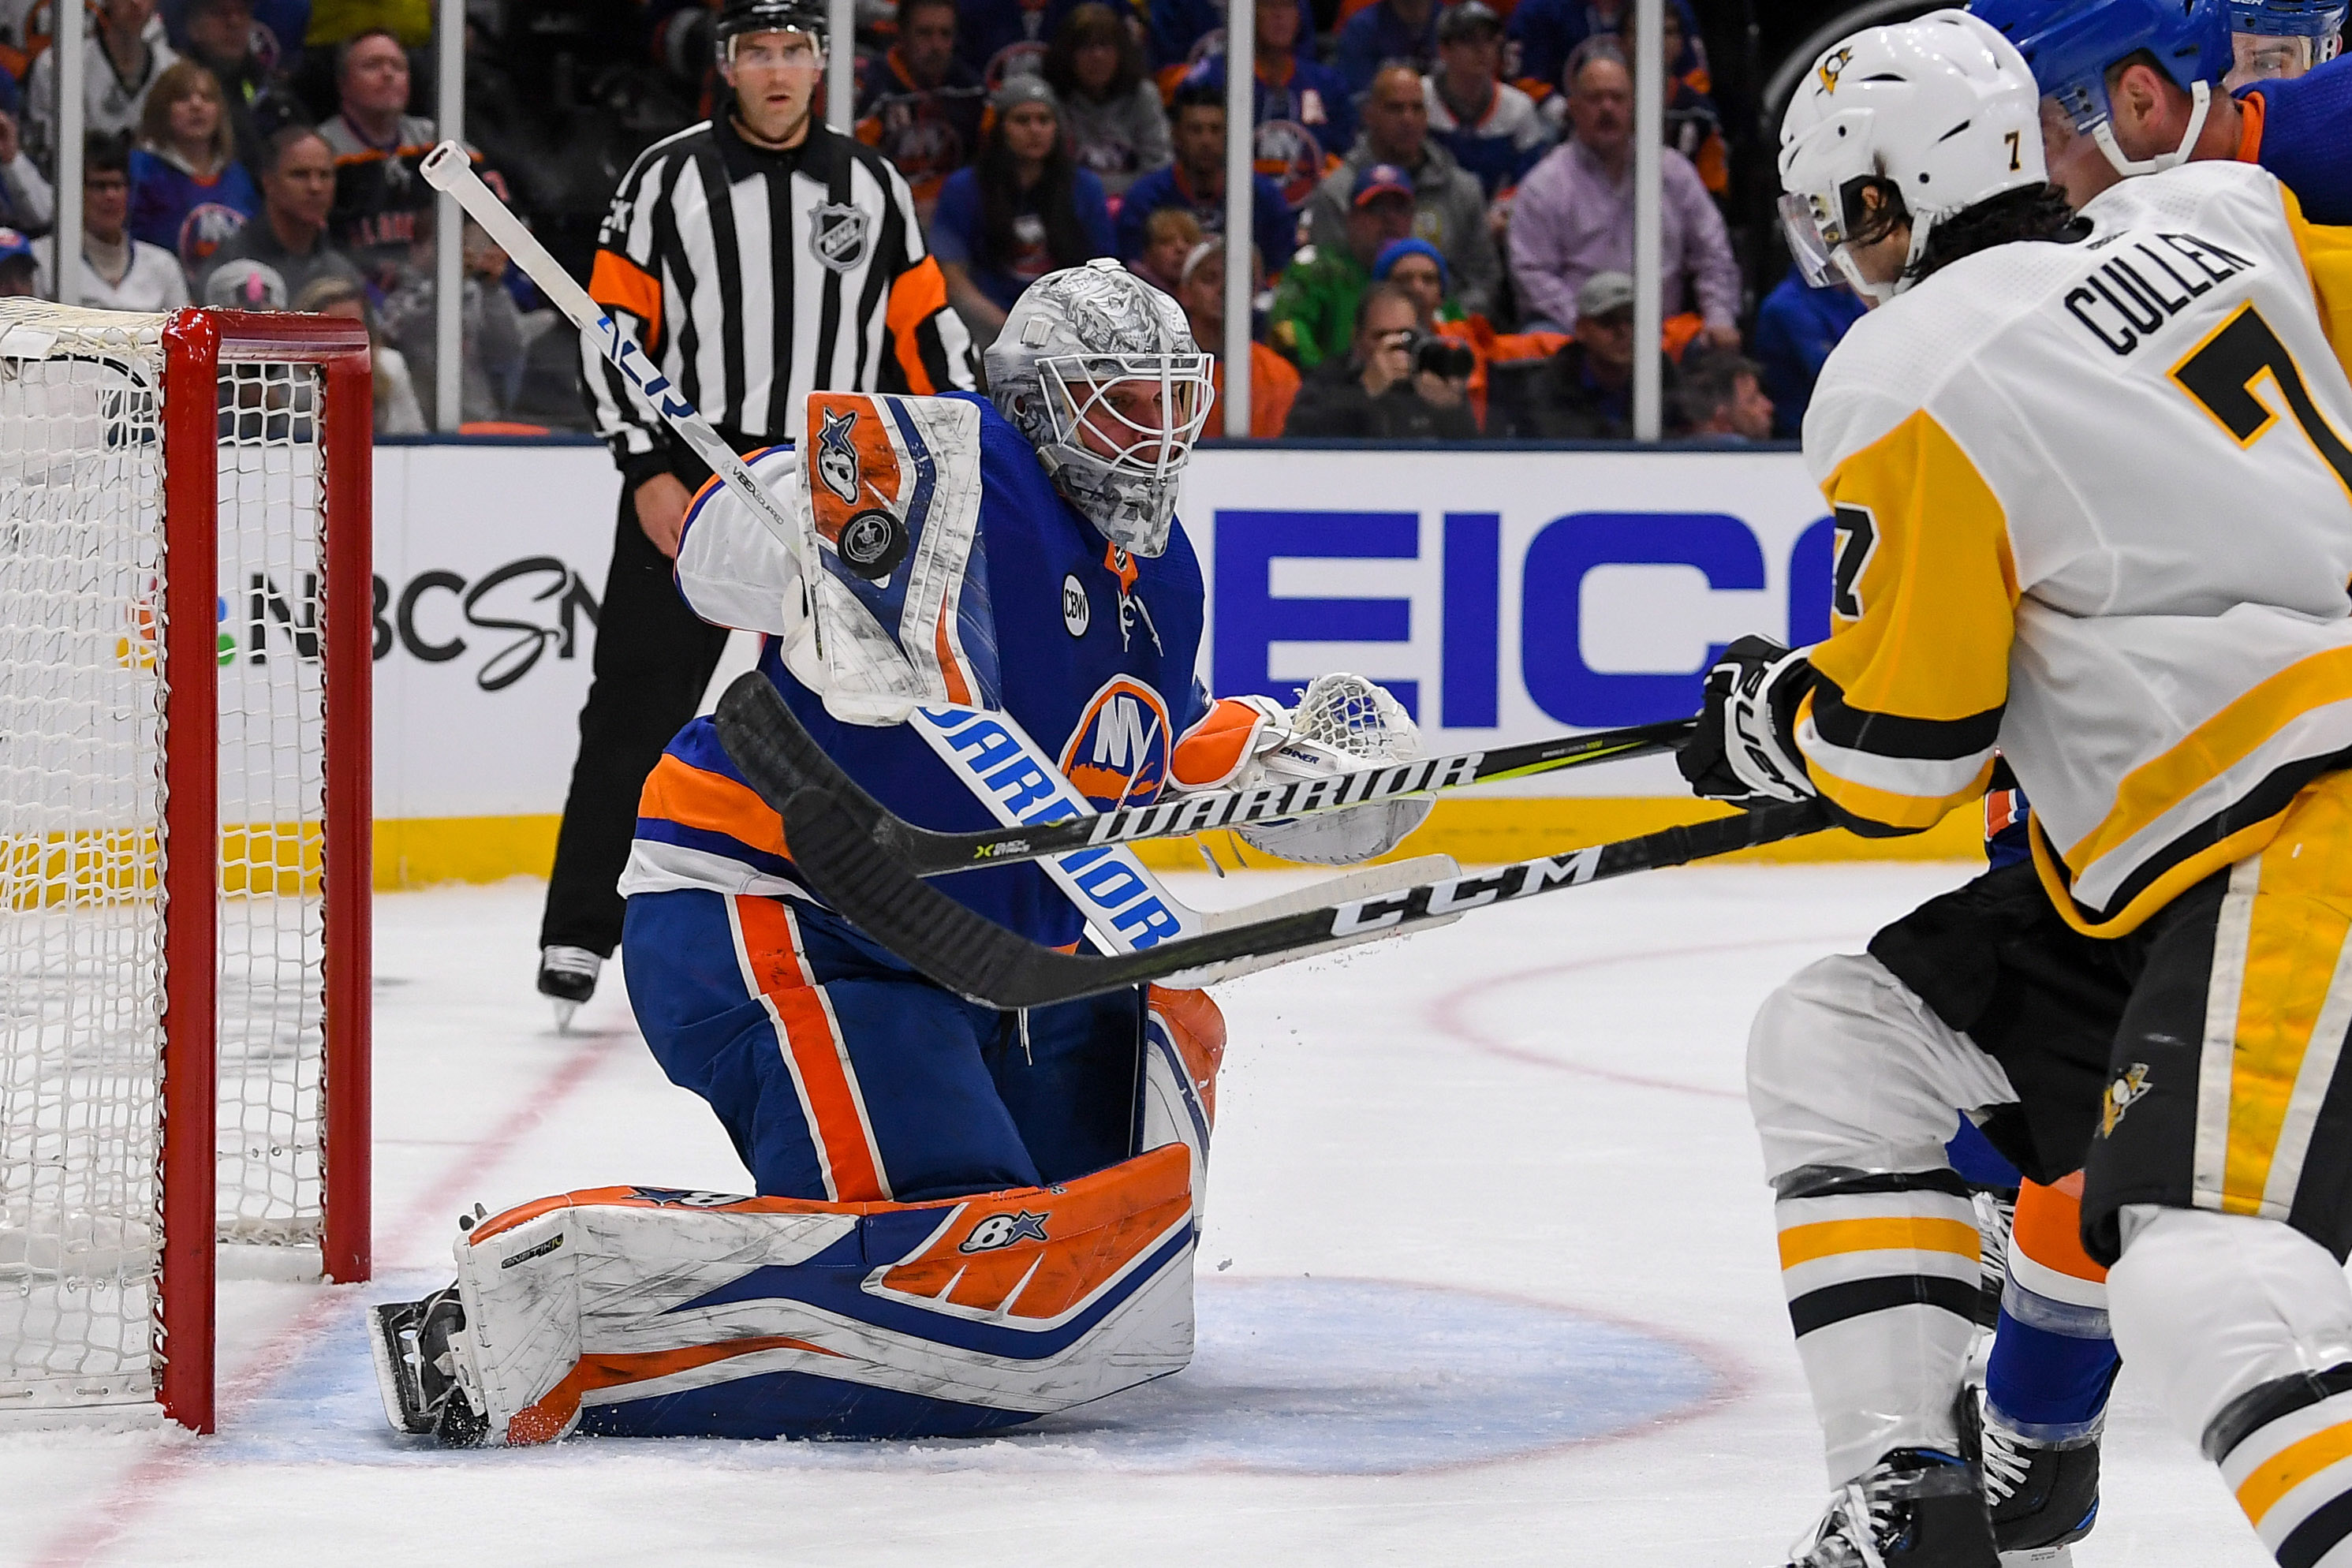 Apr 10, 2019; Brooklyn, NY, USA; New York Islanders goaltender Robin Lehner (40) makes a save against the Pittsburgh Penguins during the first period in game one of the first round of the 2019 Stanley Cup Playoffs at Barclays Center. Mandatory Credit: Dennis Schneidler-USA TODAY Sports